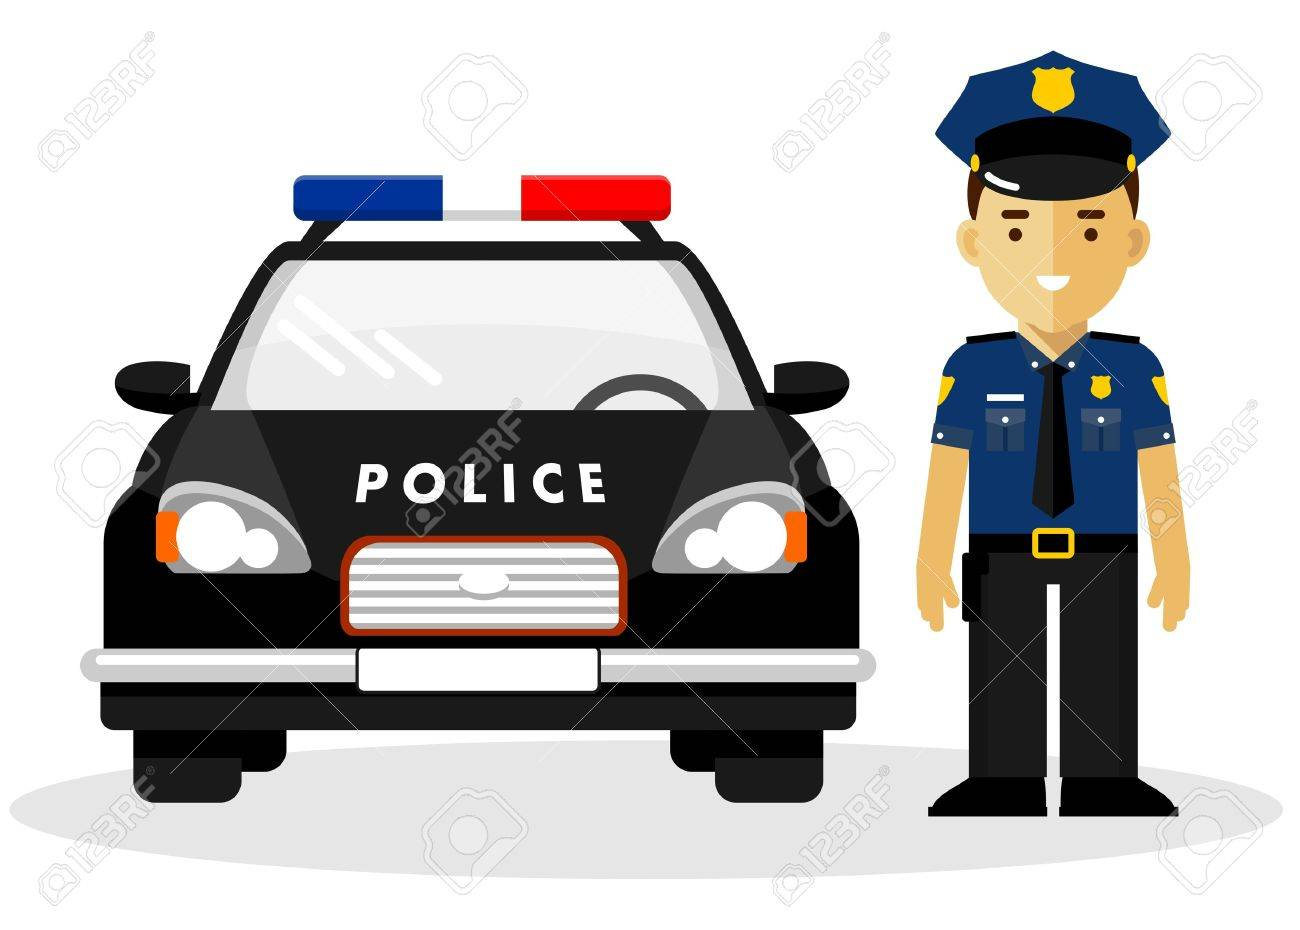 Policeman Officer On City Background With Police Car In Flat Royalty Free Cliparts Vectors And Stock Illustration Image 50996033